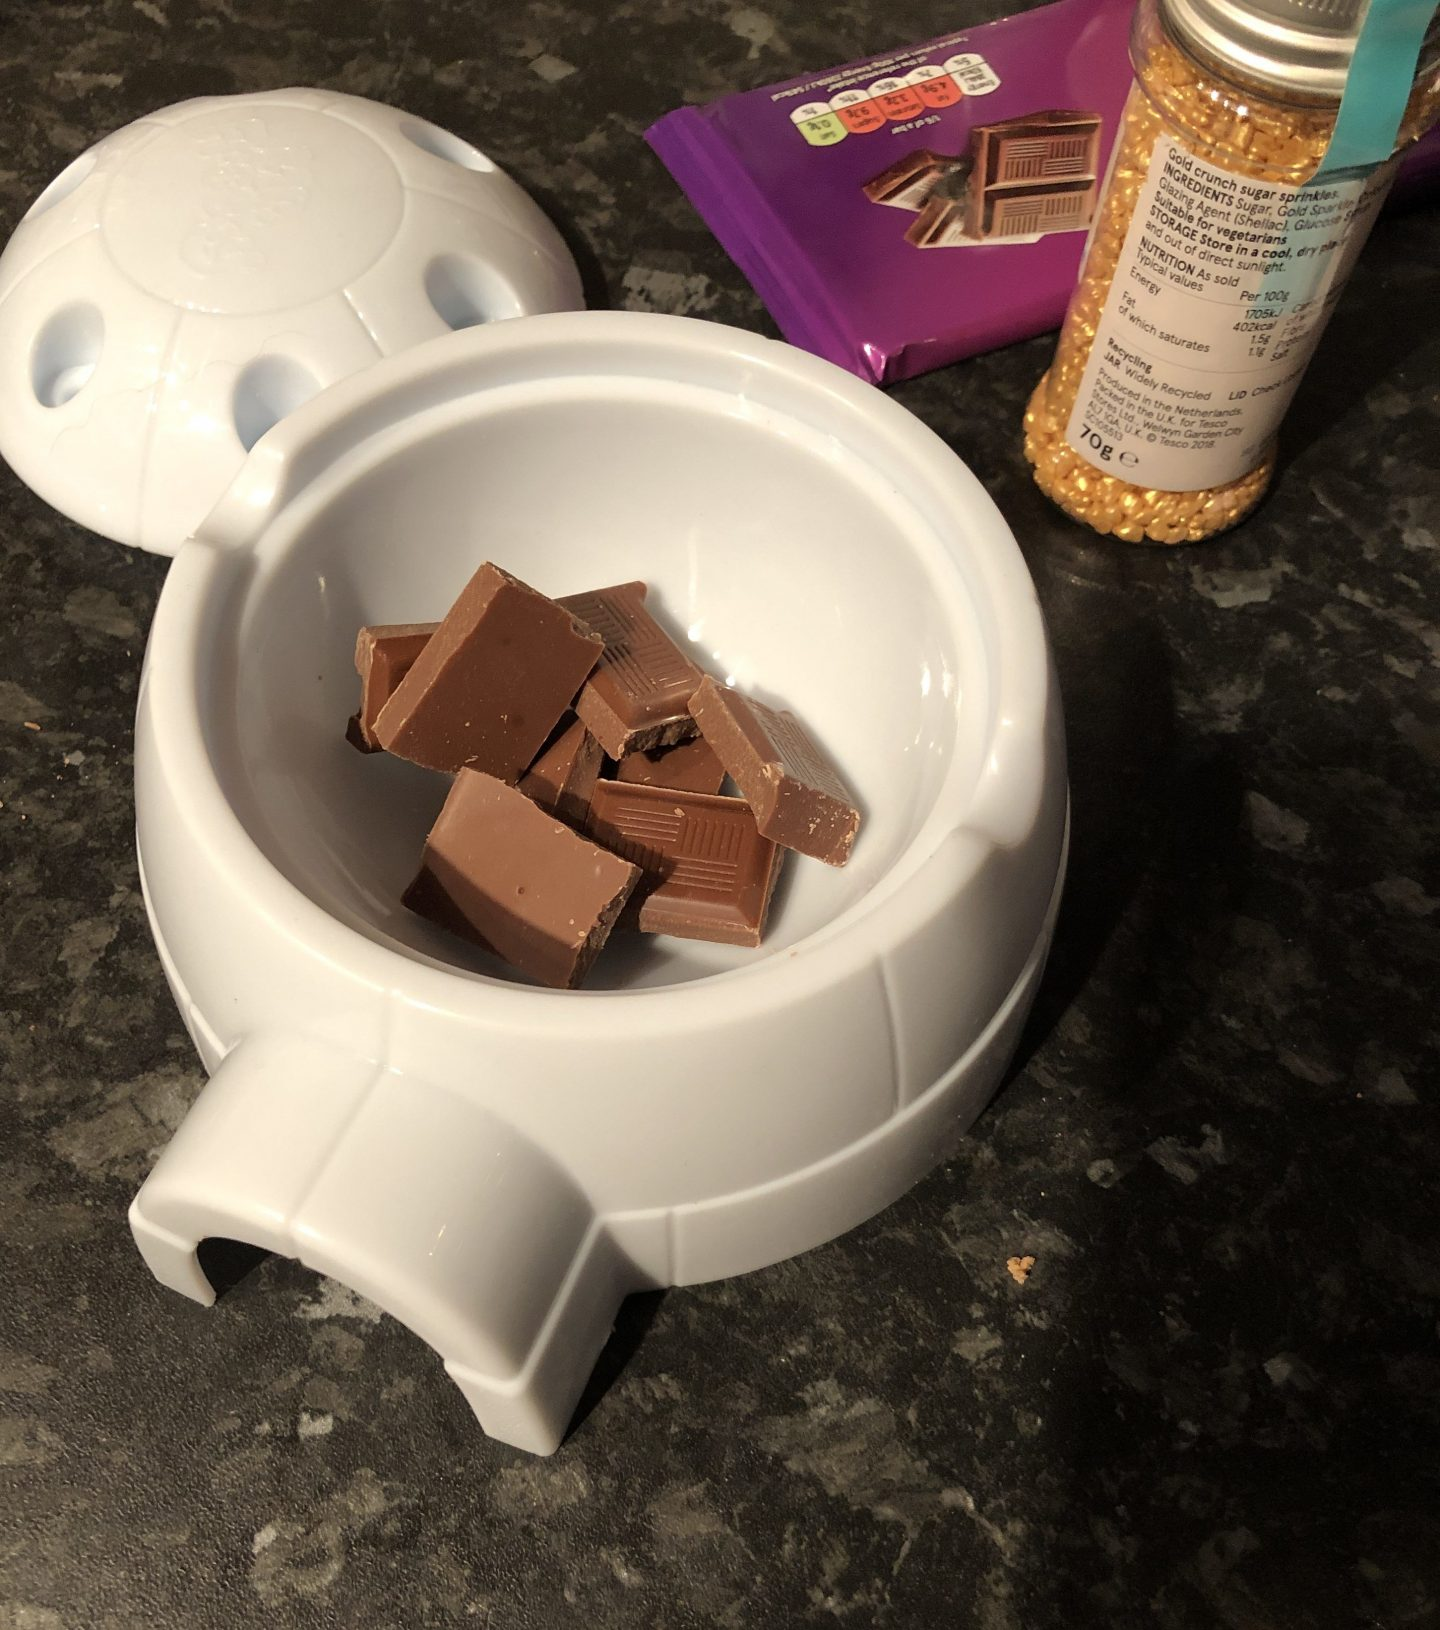 Mr Frosty Choc Ice Maker Review Live Laugh Go